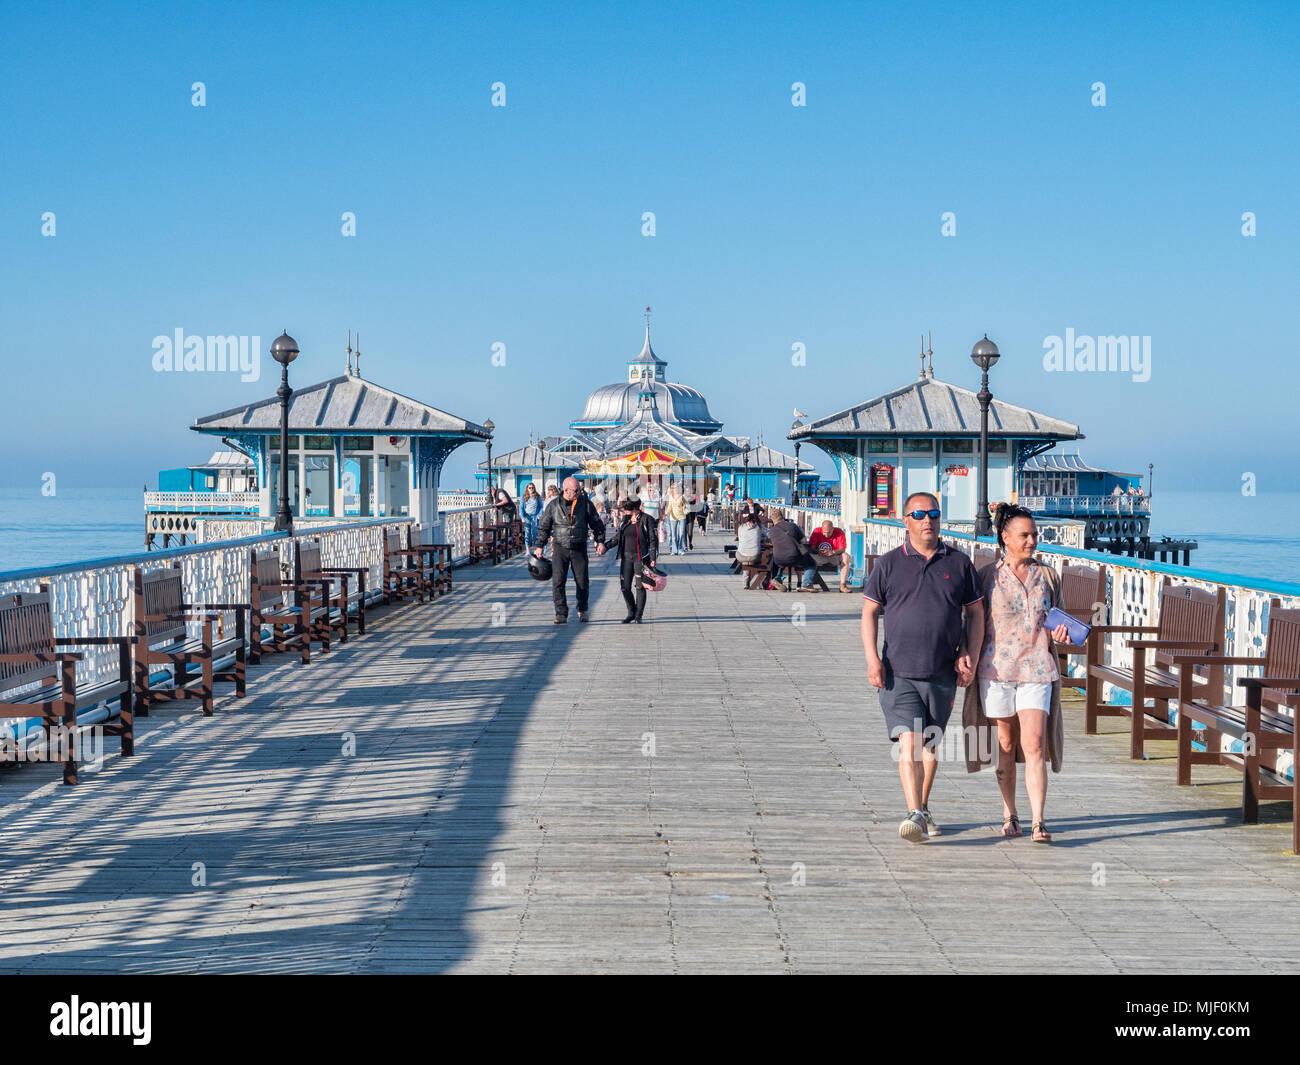 Llandudno, North Wales, UK, 5 May 2018.  Couples strolling hand in hand on the pier in the warm sunshine of the May Day holiday weekend. - Stock Image